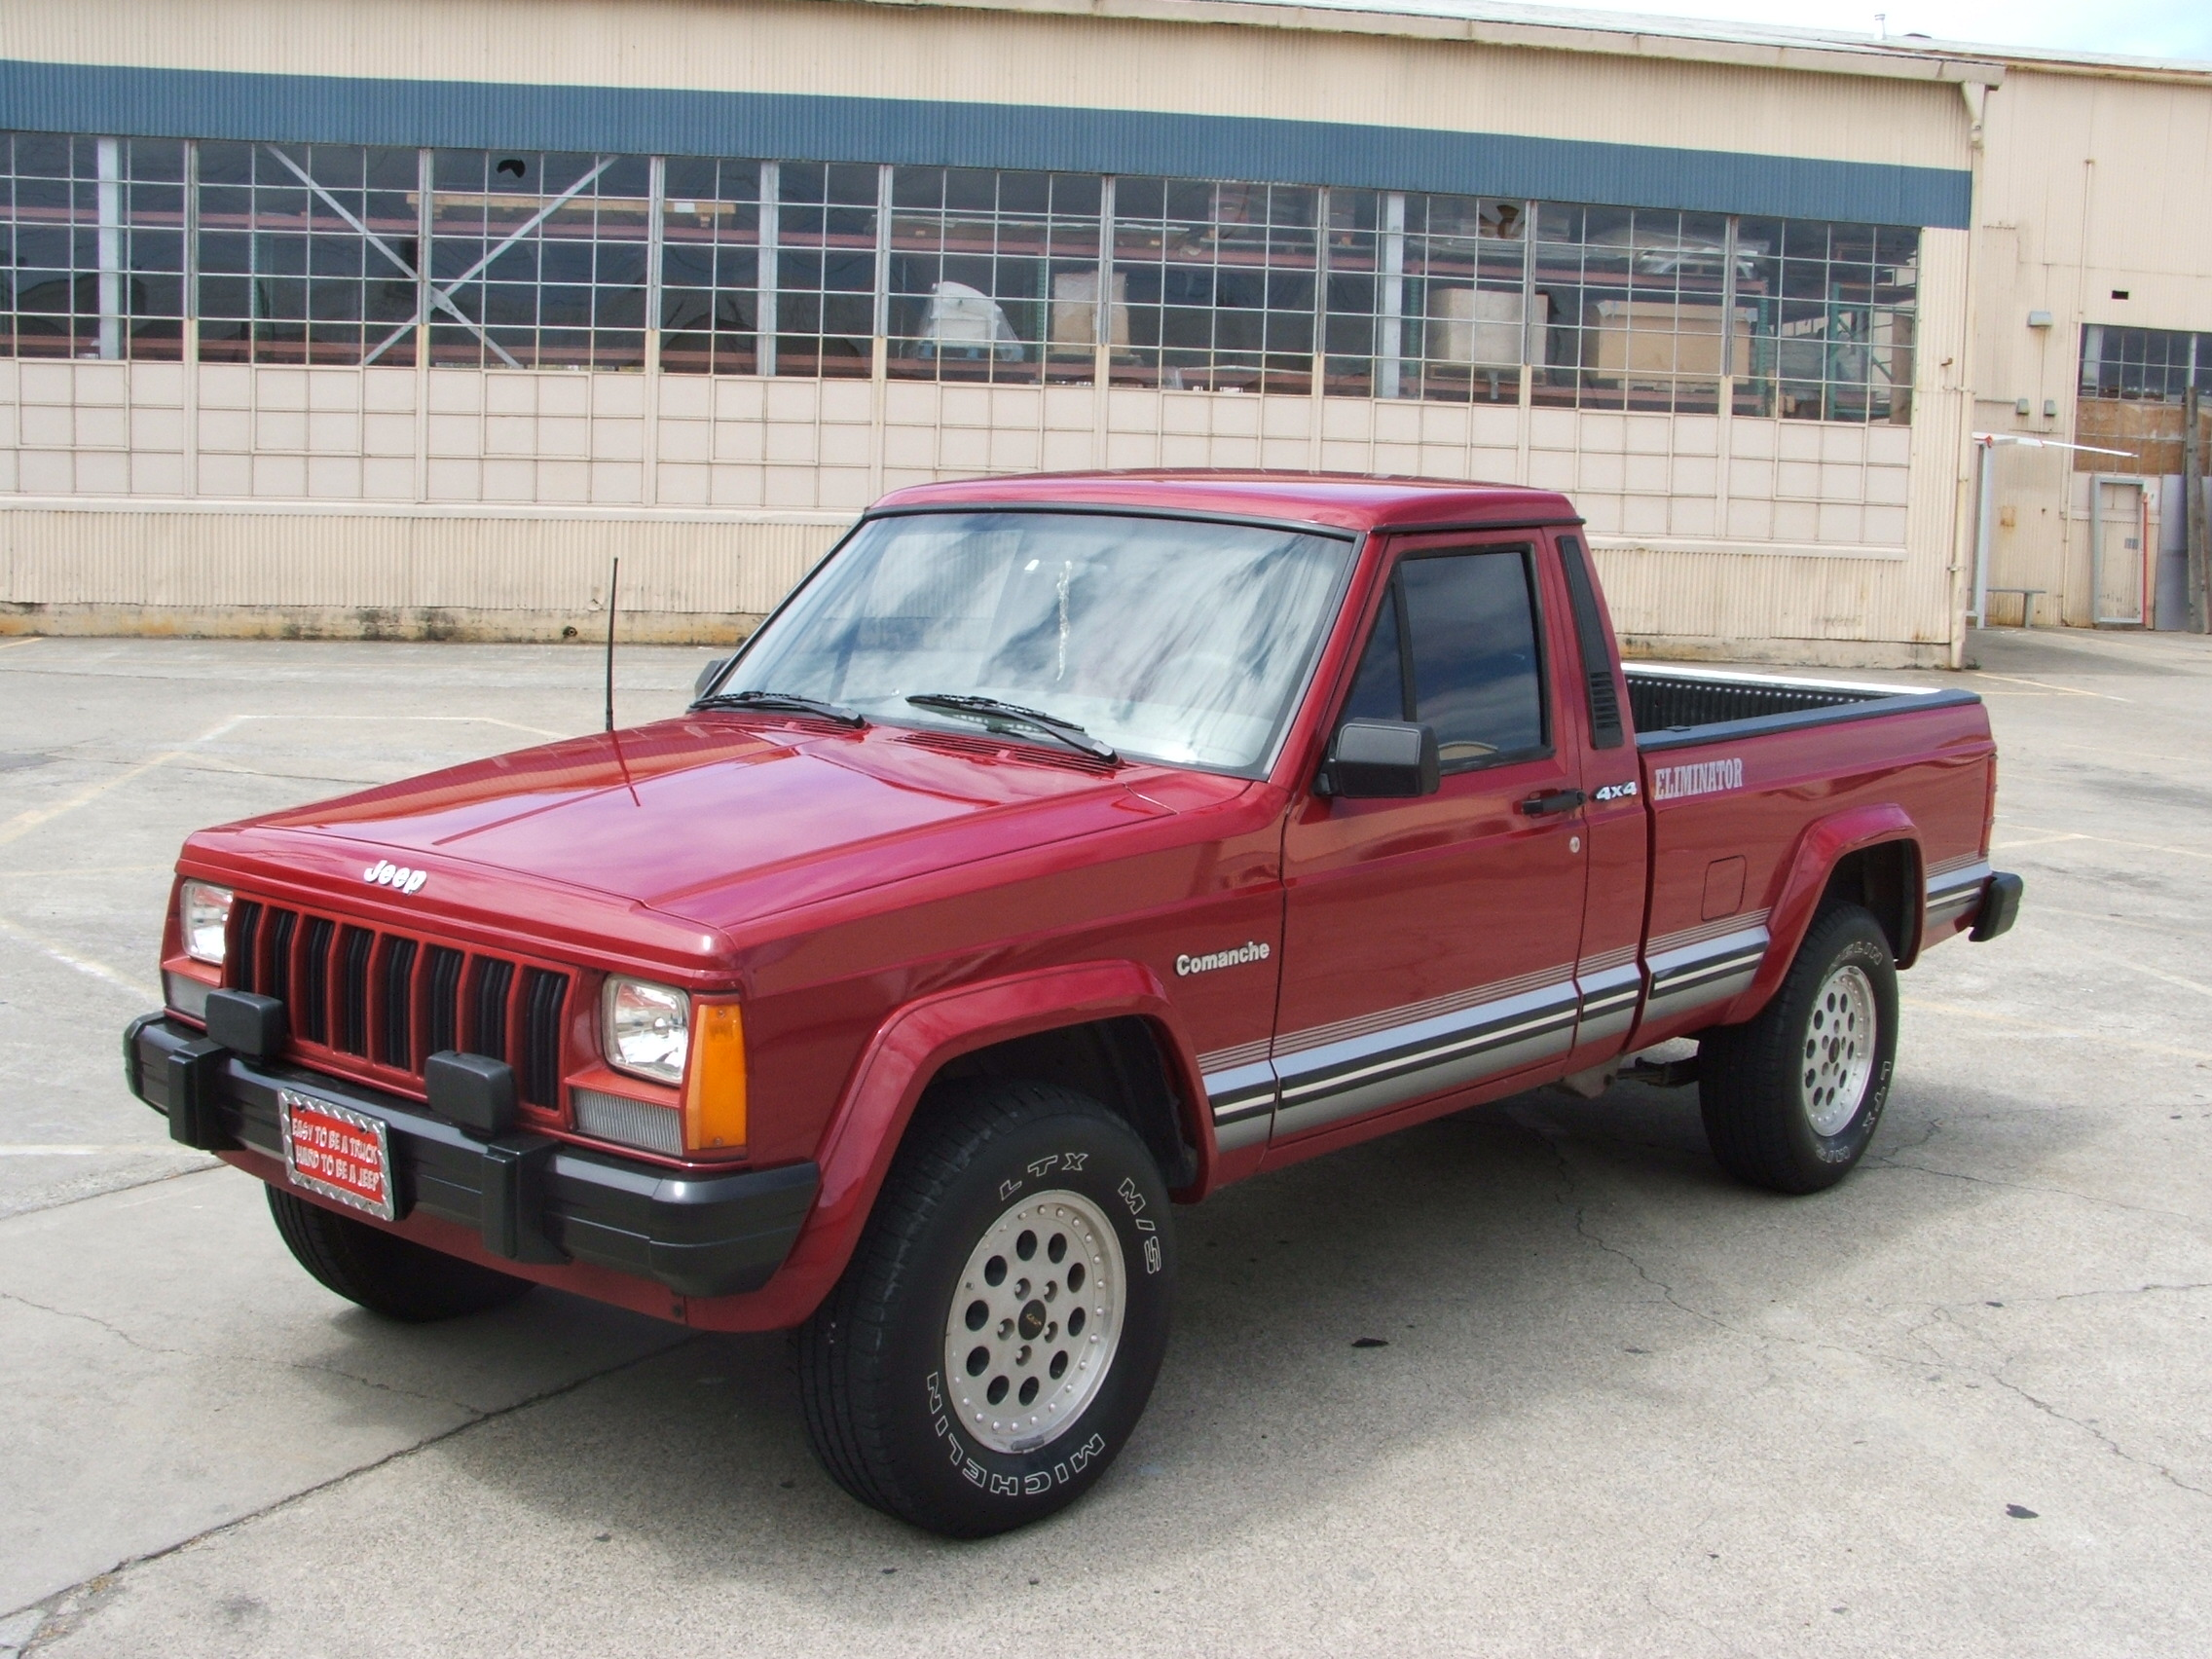 Old Mini Truck >> File:1990 Jeep Comanche Eliminator.jpg - Wikimedia Commons